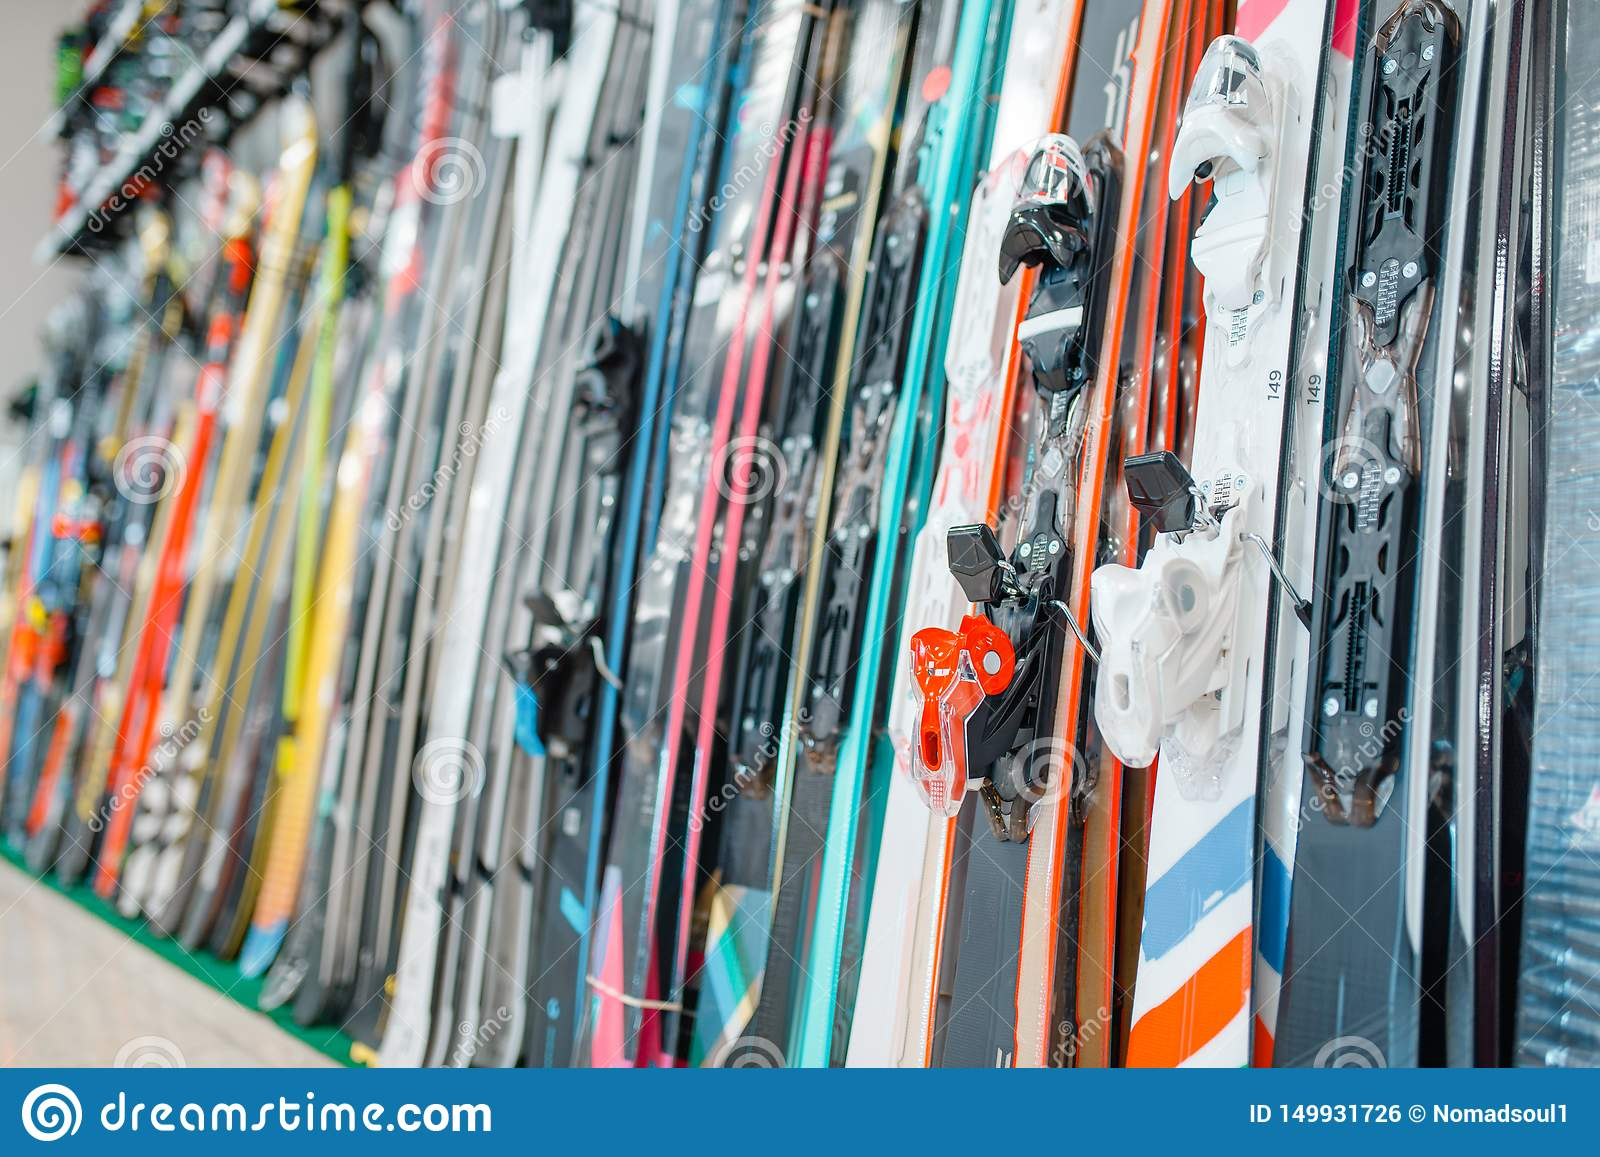 Rows of skis in sports shop, closeup, nobody